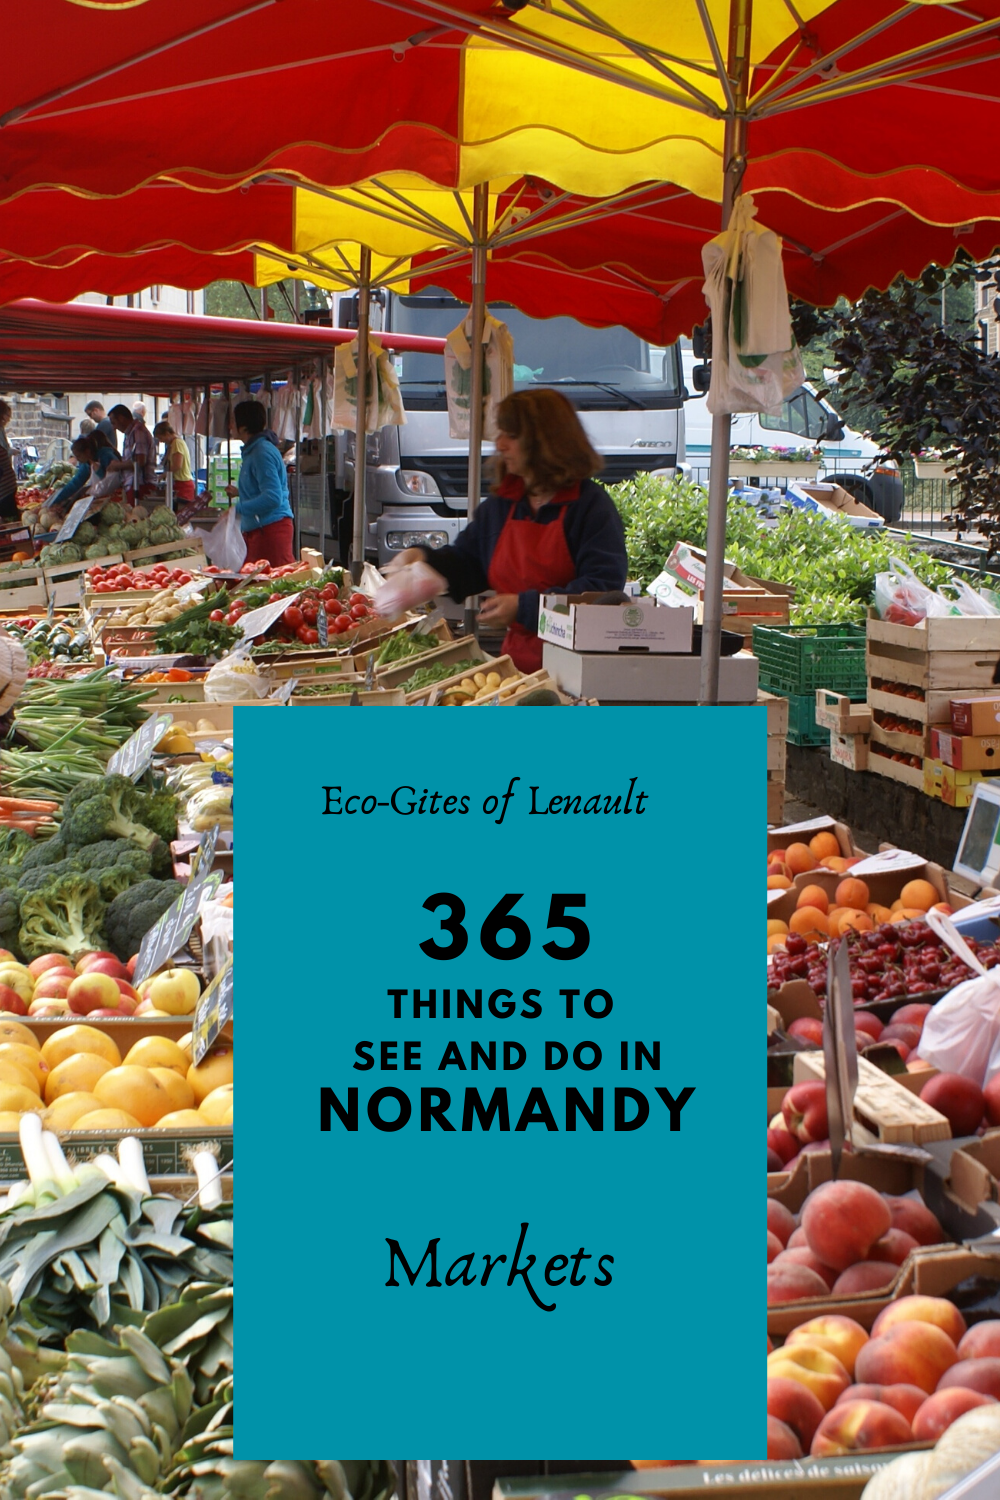 Normandy markets